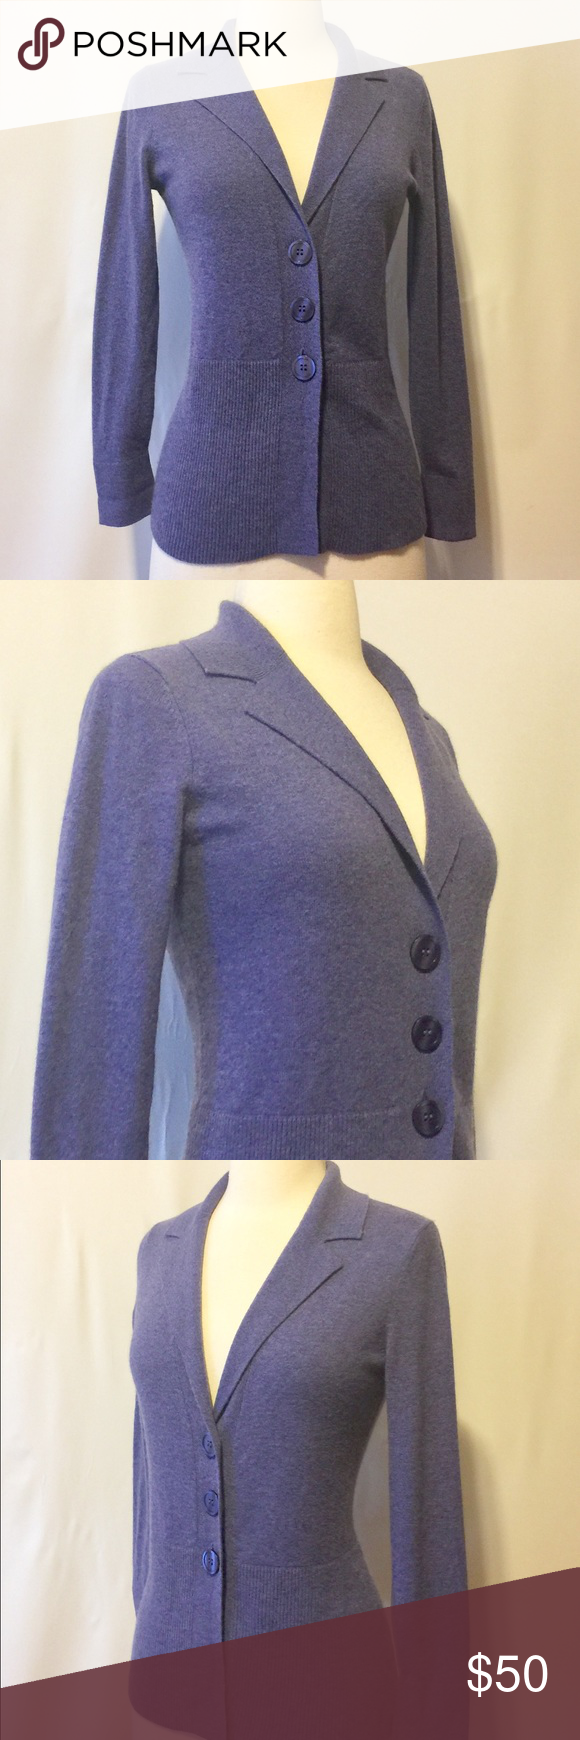 JONES Lavender Cashmere Cardigan Sz. PS | Ps, Cashmere and Lavender